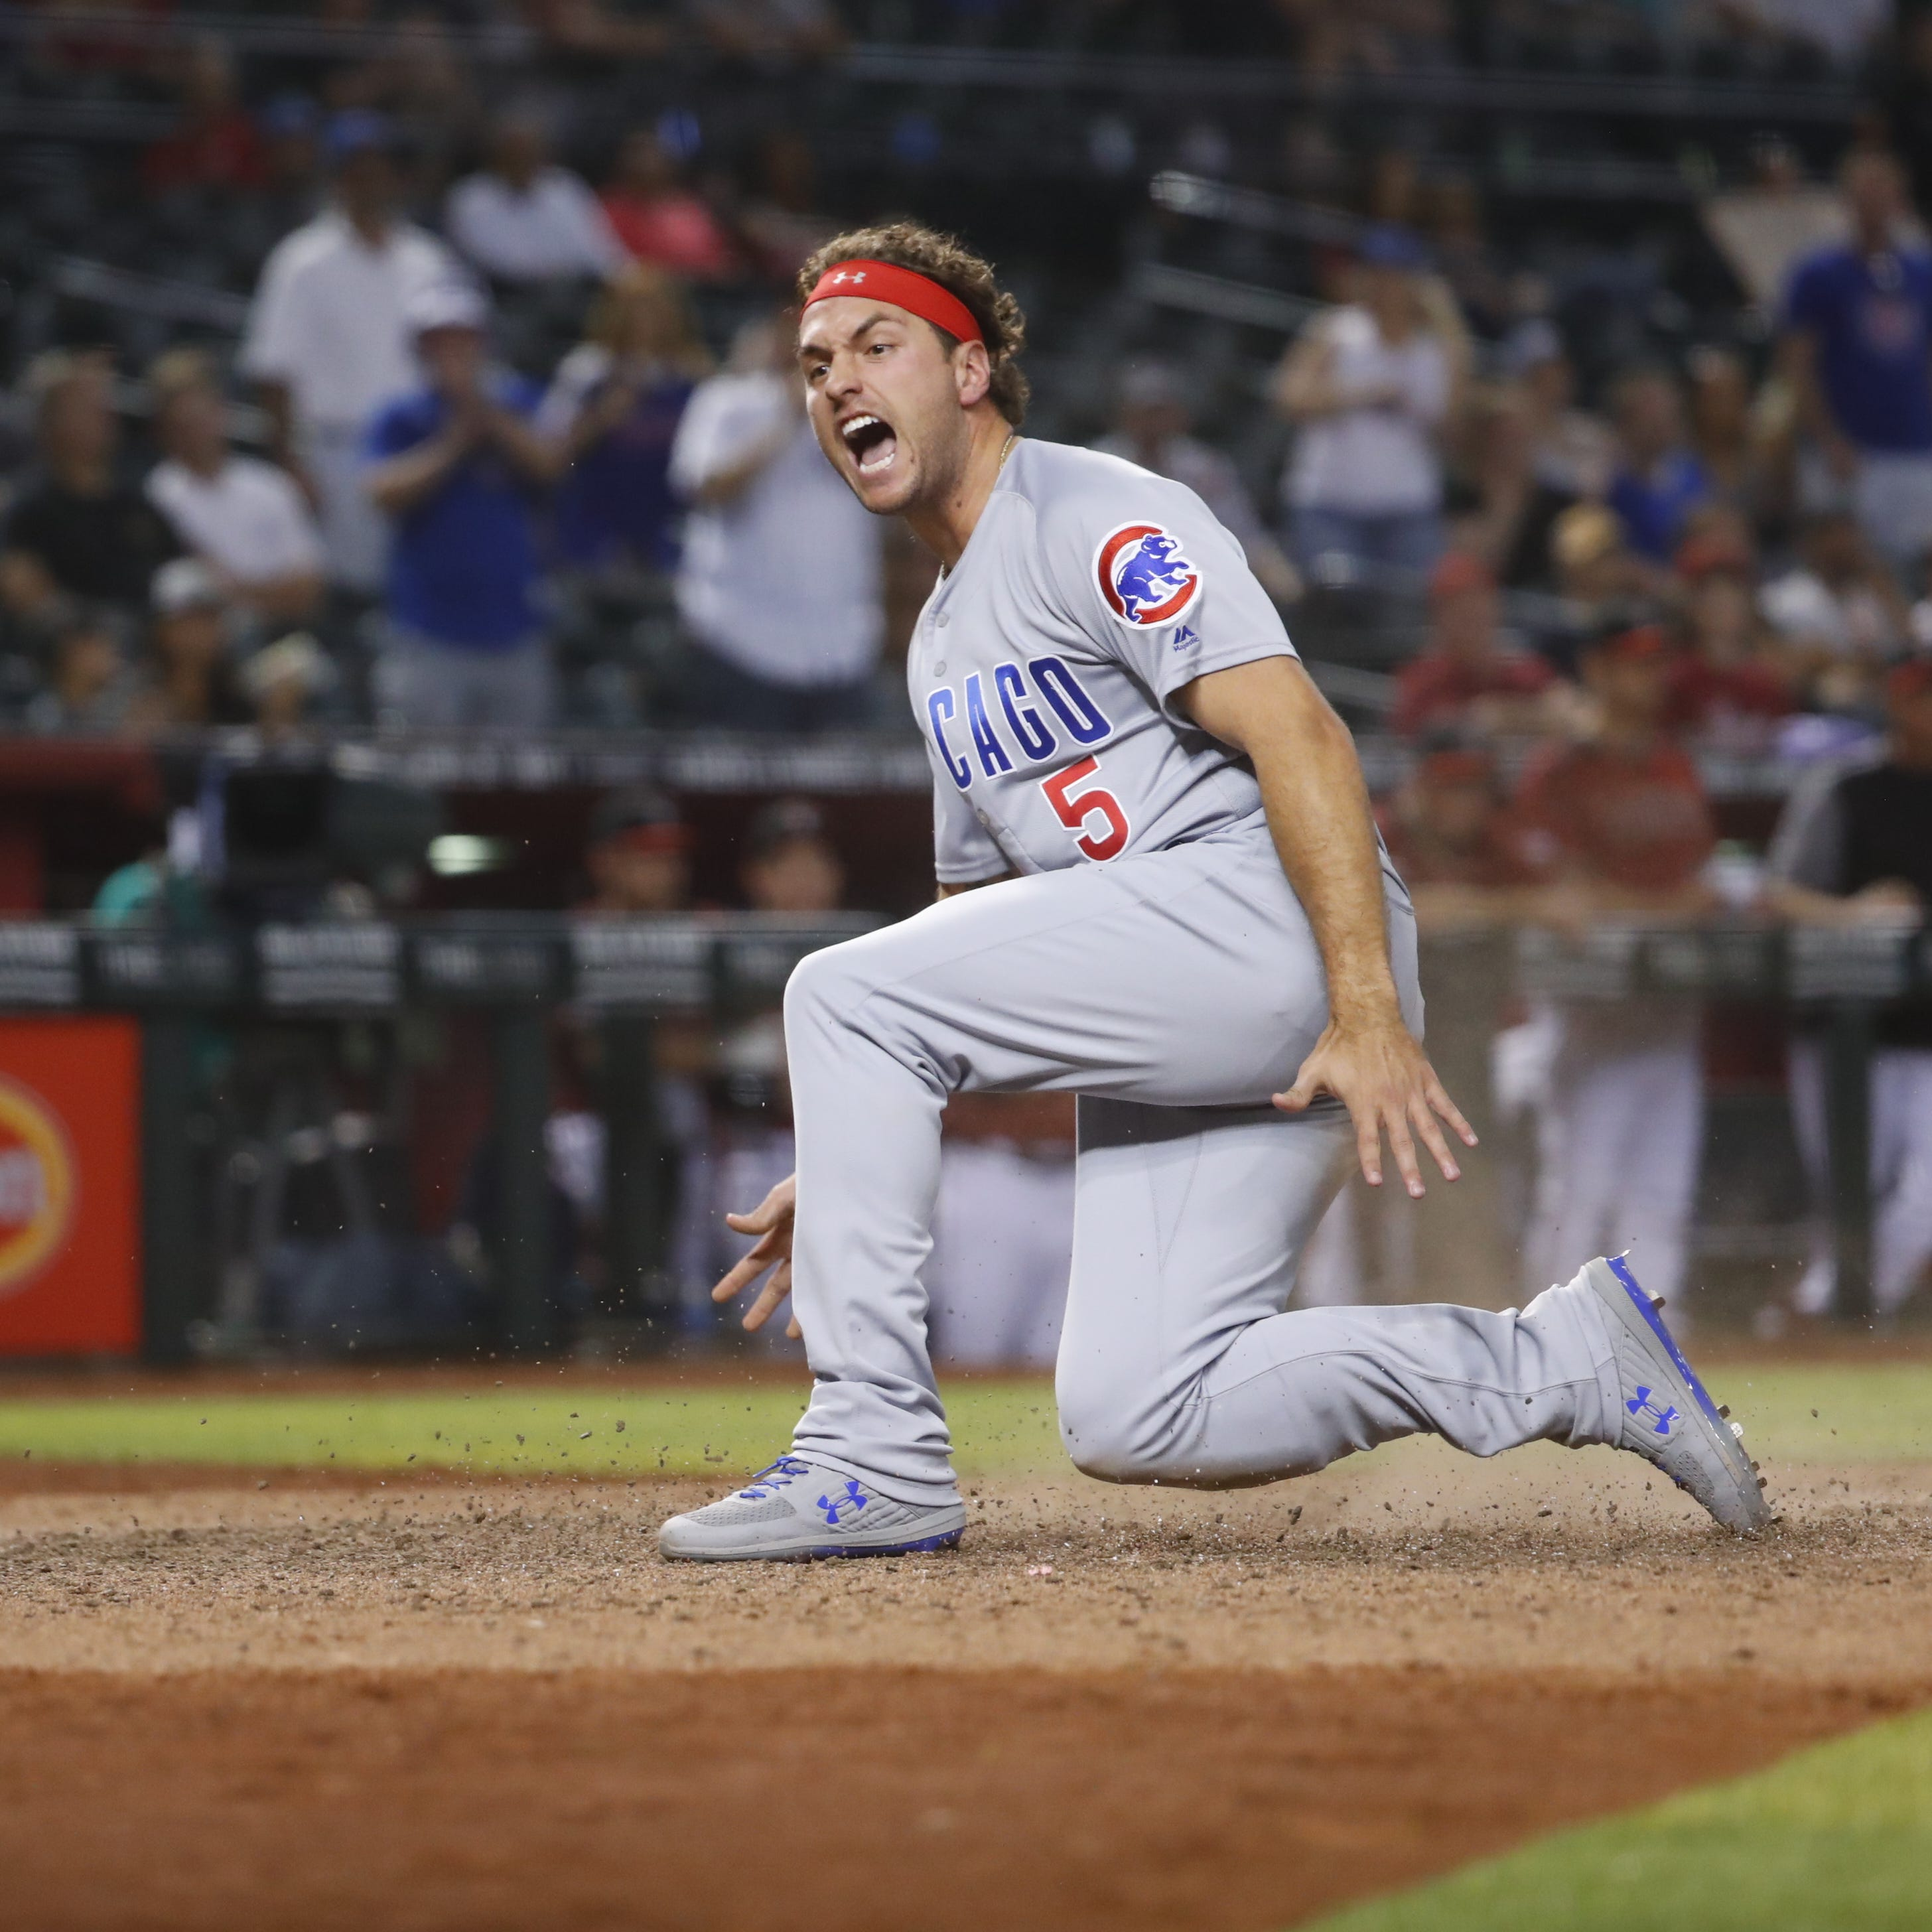 'We made things interesting': Diamondbacks fall to Cubs in draining, 15-inning series finale